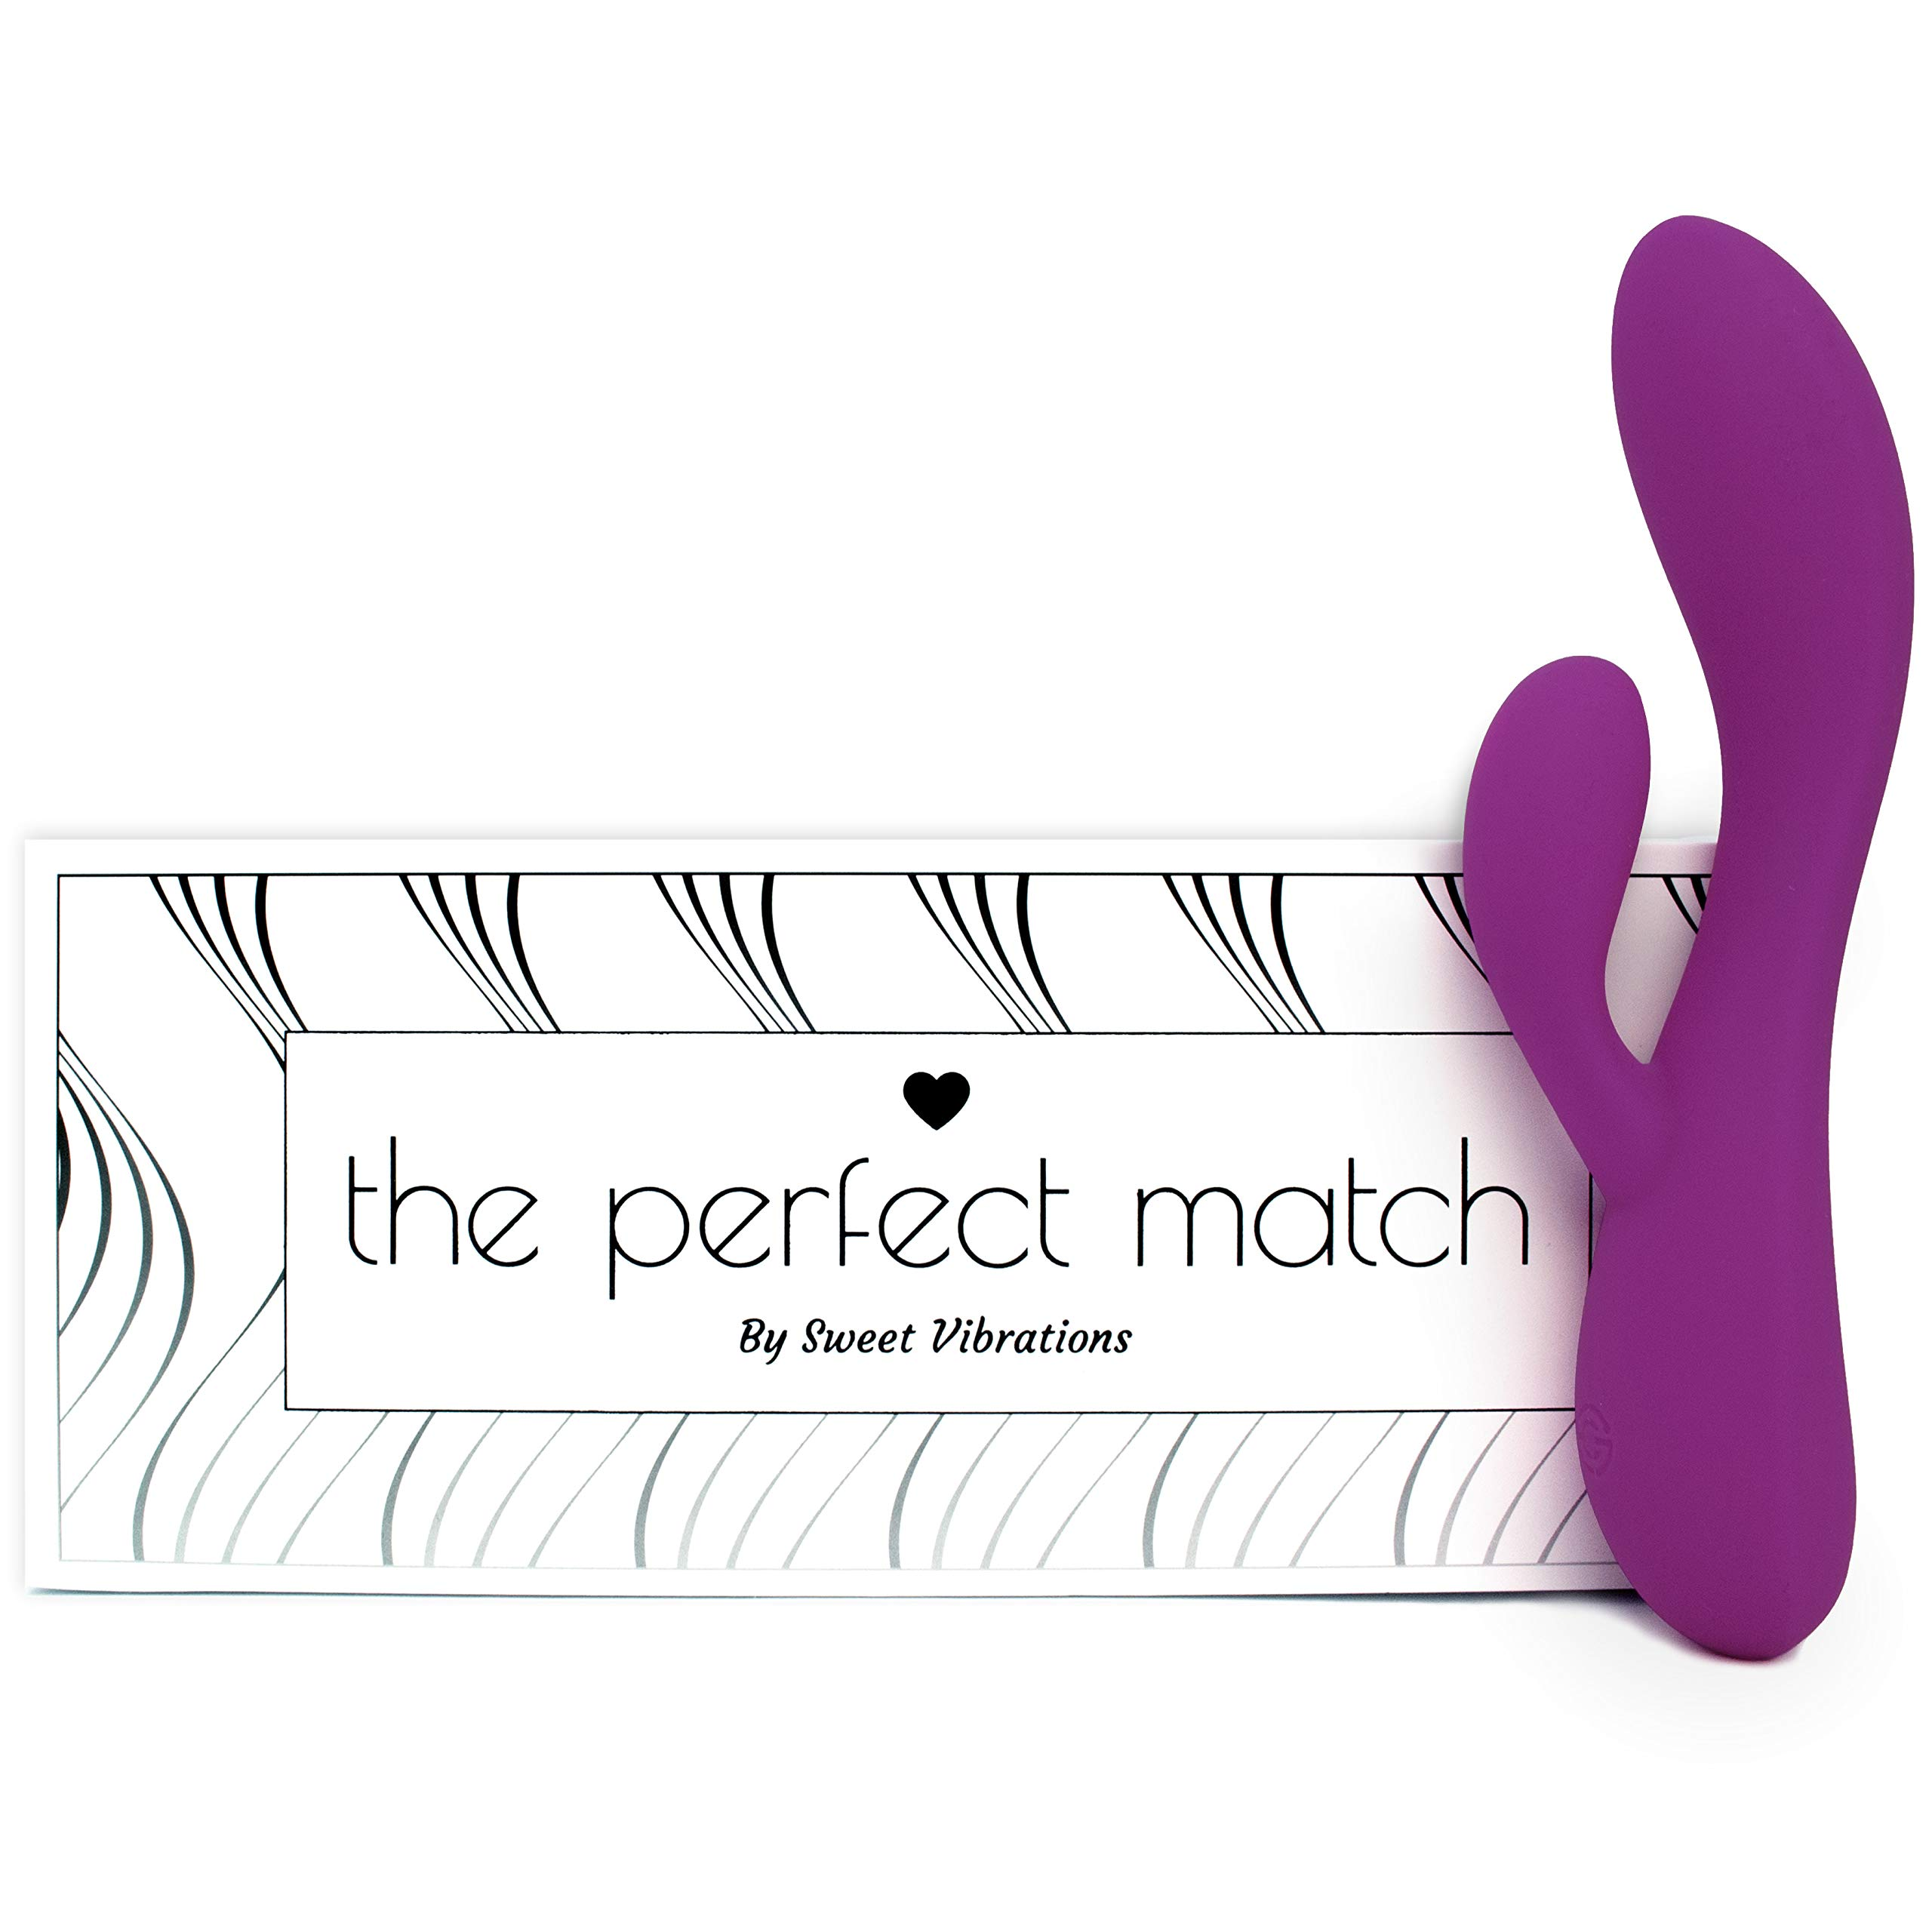 The Perfect Match - Flexible Rabbit Vibrator Sex Toy with 10 Powerful Settings for Women & Couples, Waterproof, Rechargeable, Quiet, by Sweet Vibrations (Lavender)